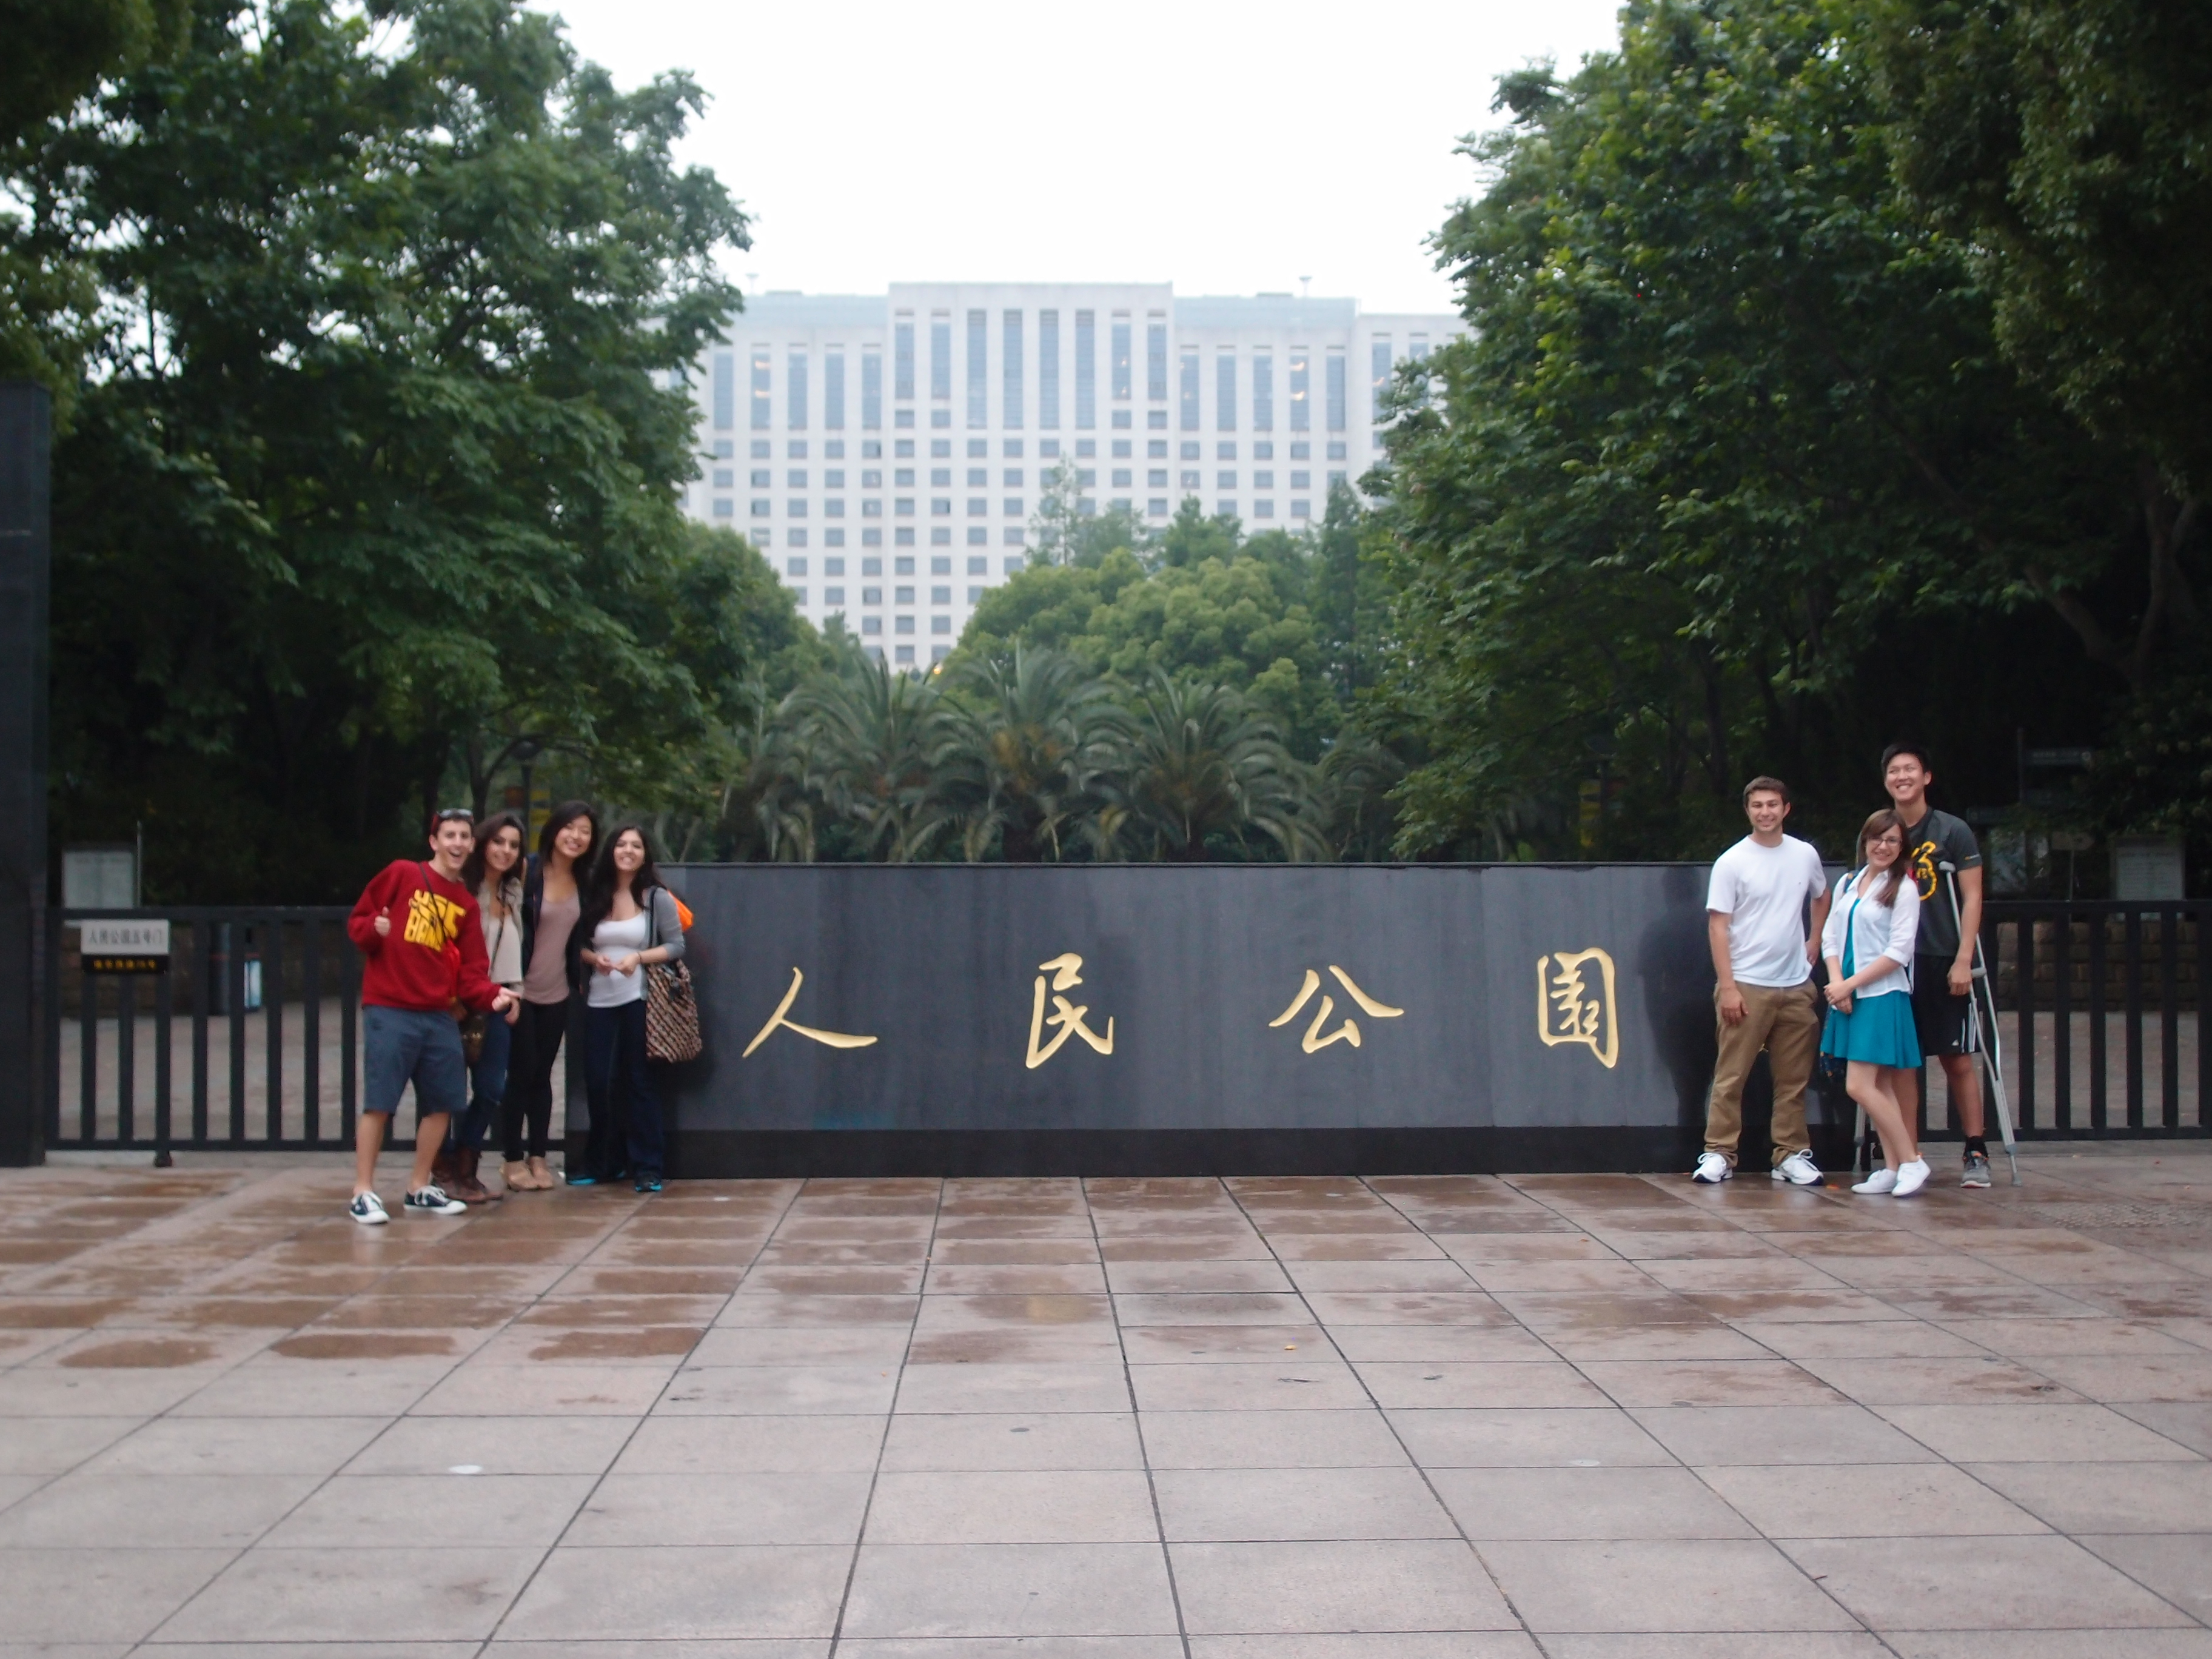 Taken: People's Square at June 3, 2014 at 16:10